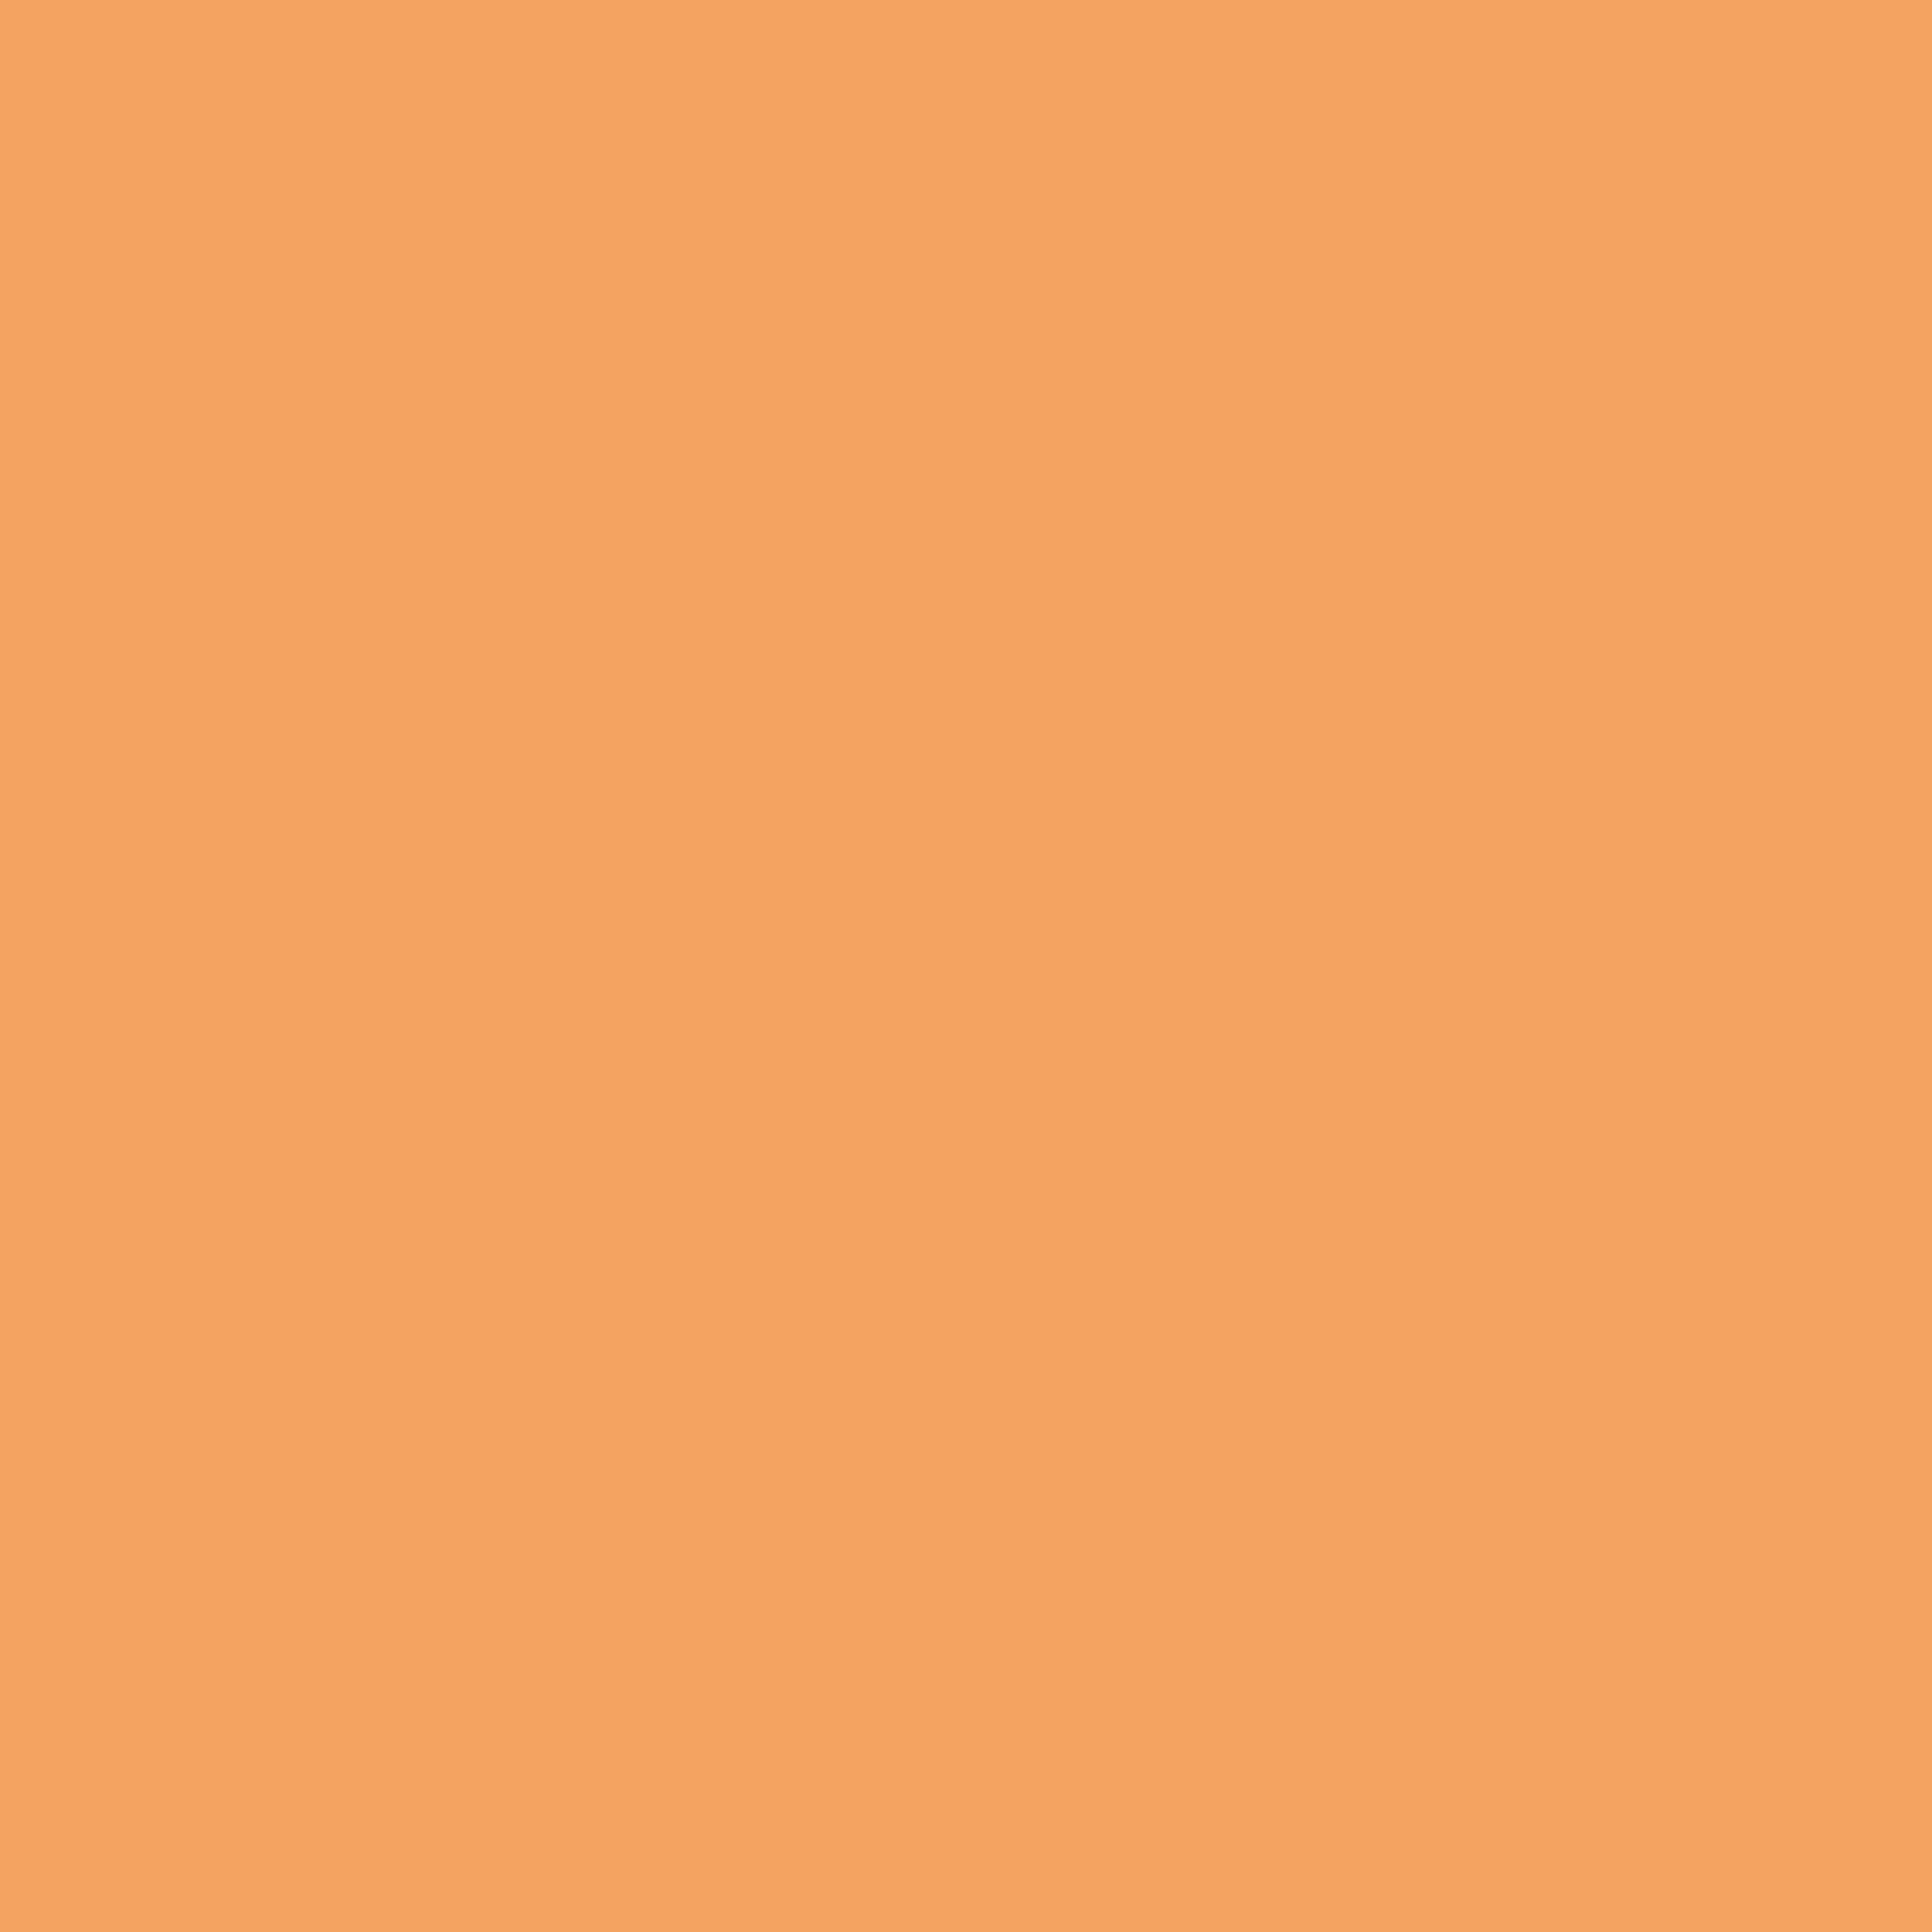 2048x2048 Sandy Brown Solid Color Background